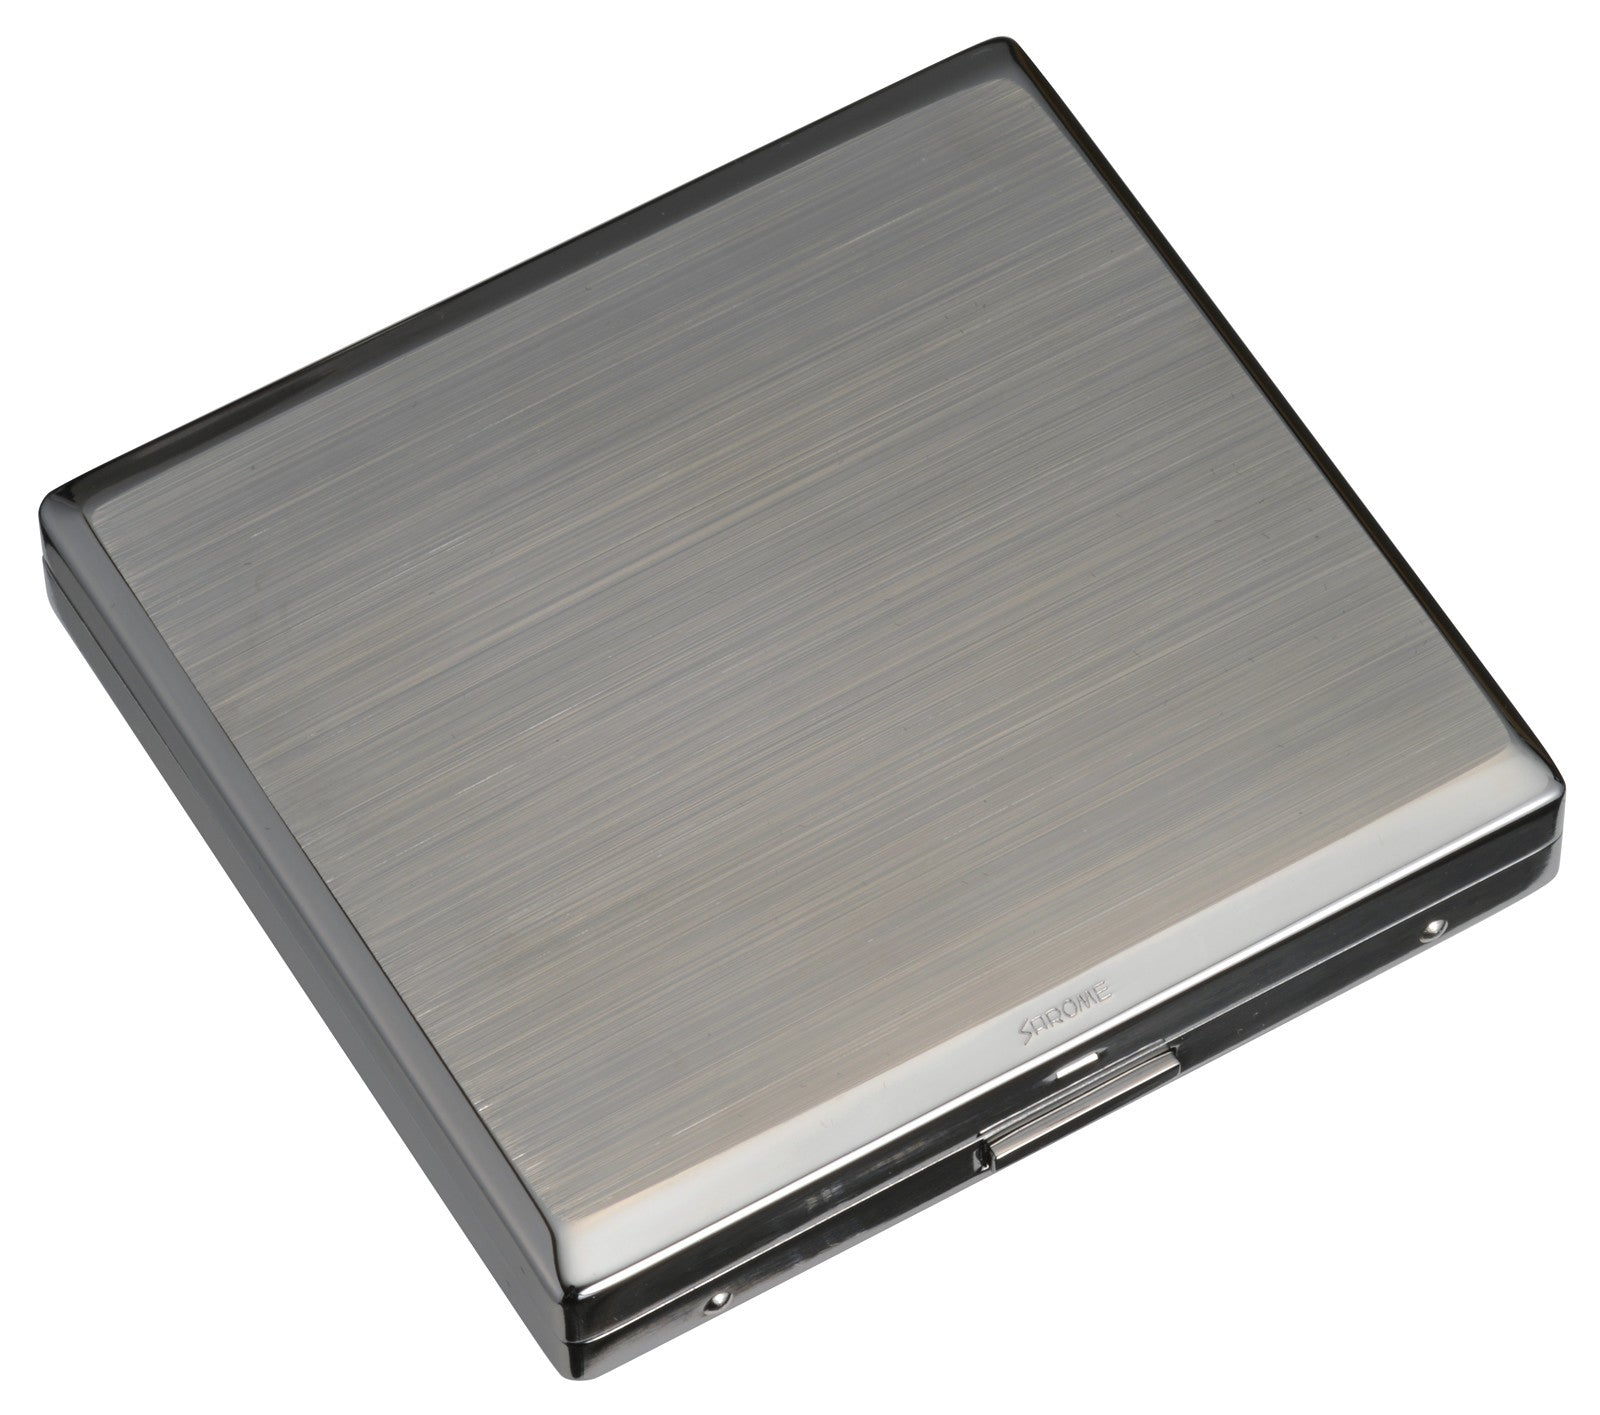 Sarome Metal Cigarette Case EXCC3-05 KS20 / Grey nickel satin (Light gun metal)